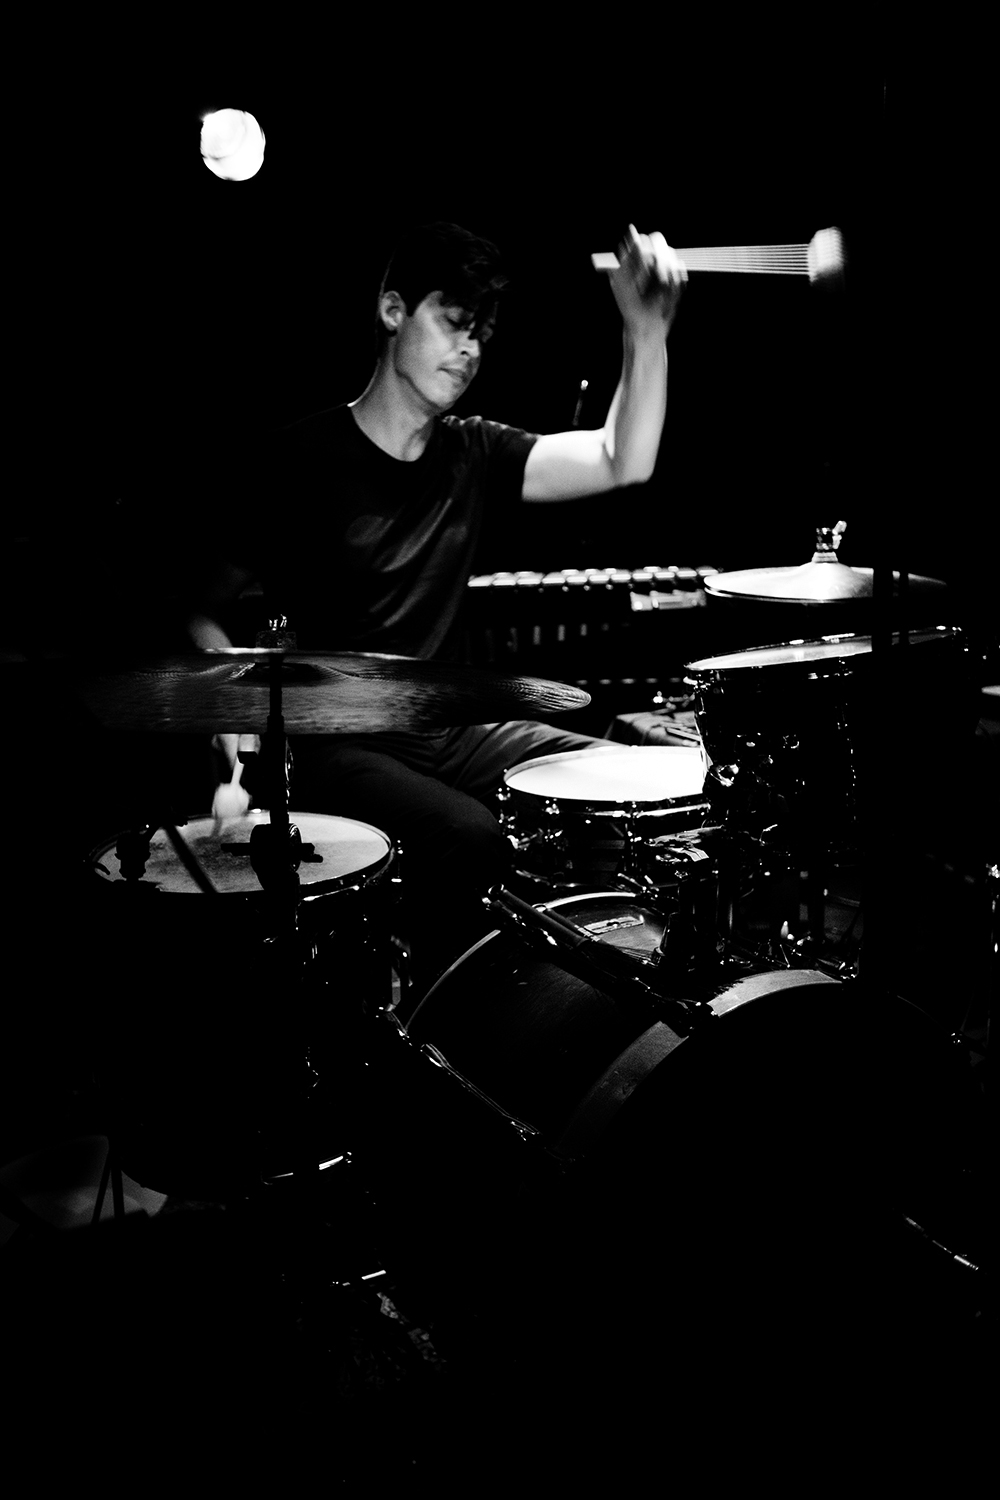 Ches Smith by Laurent Orseau - Concert - Les Ateliers Claus - Brussels, Belgium #2